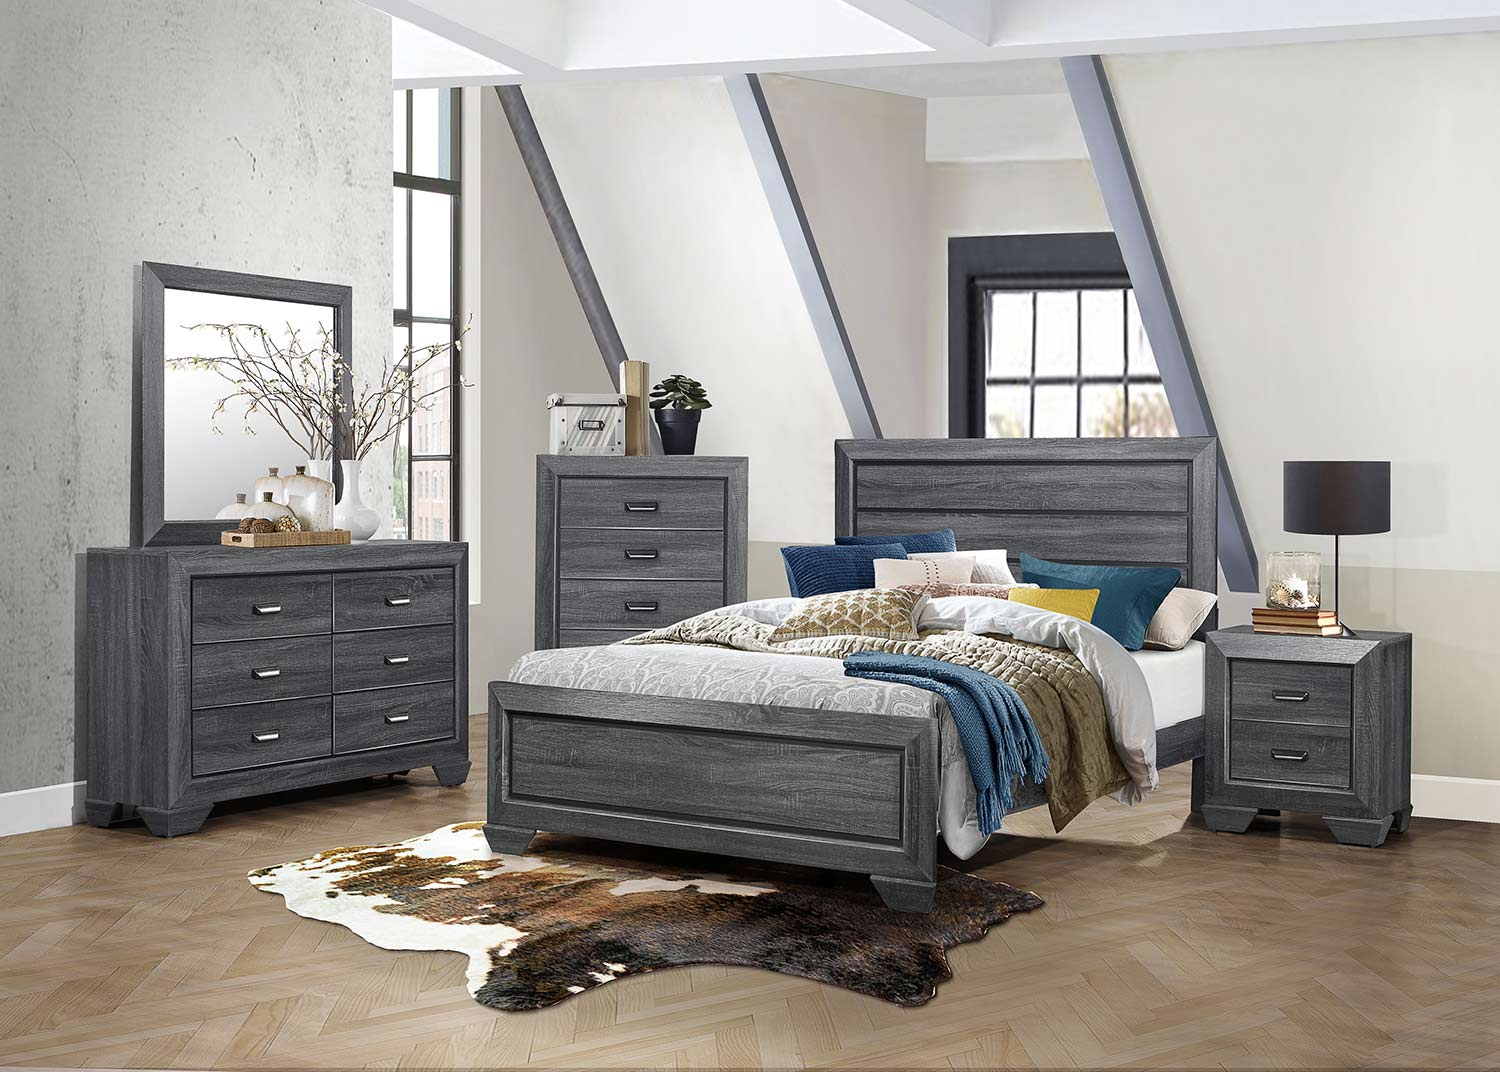 Homelegance Beechnut Bedroom Set - Gray